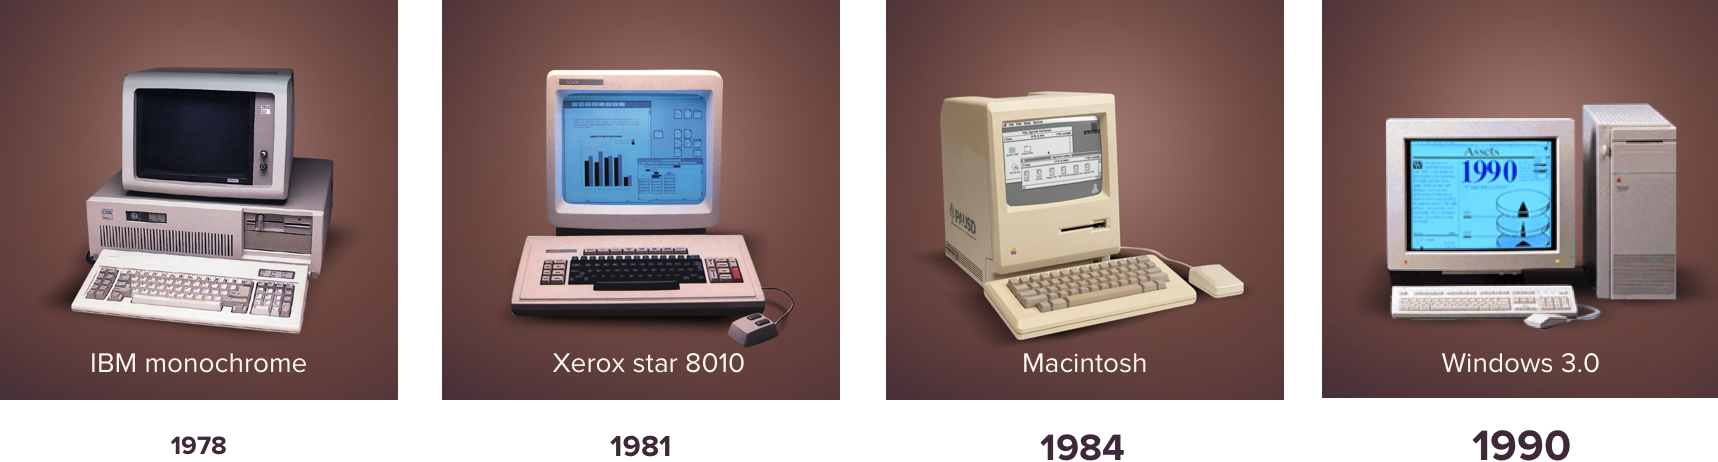 History of computers and Operating System